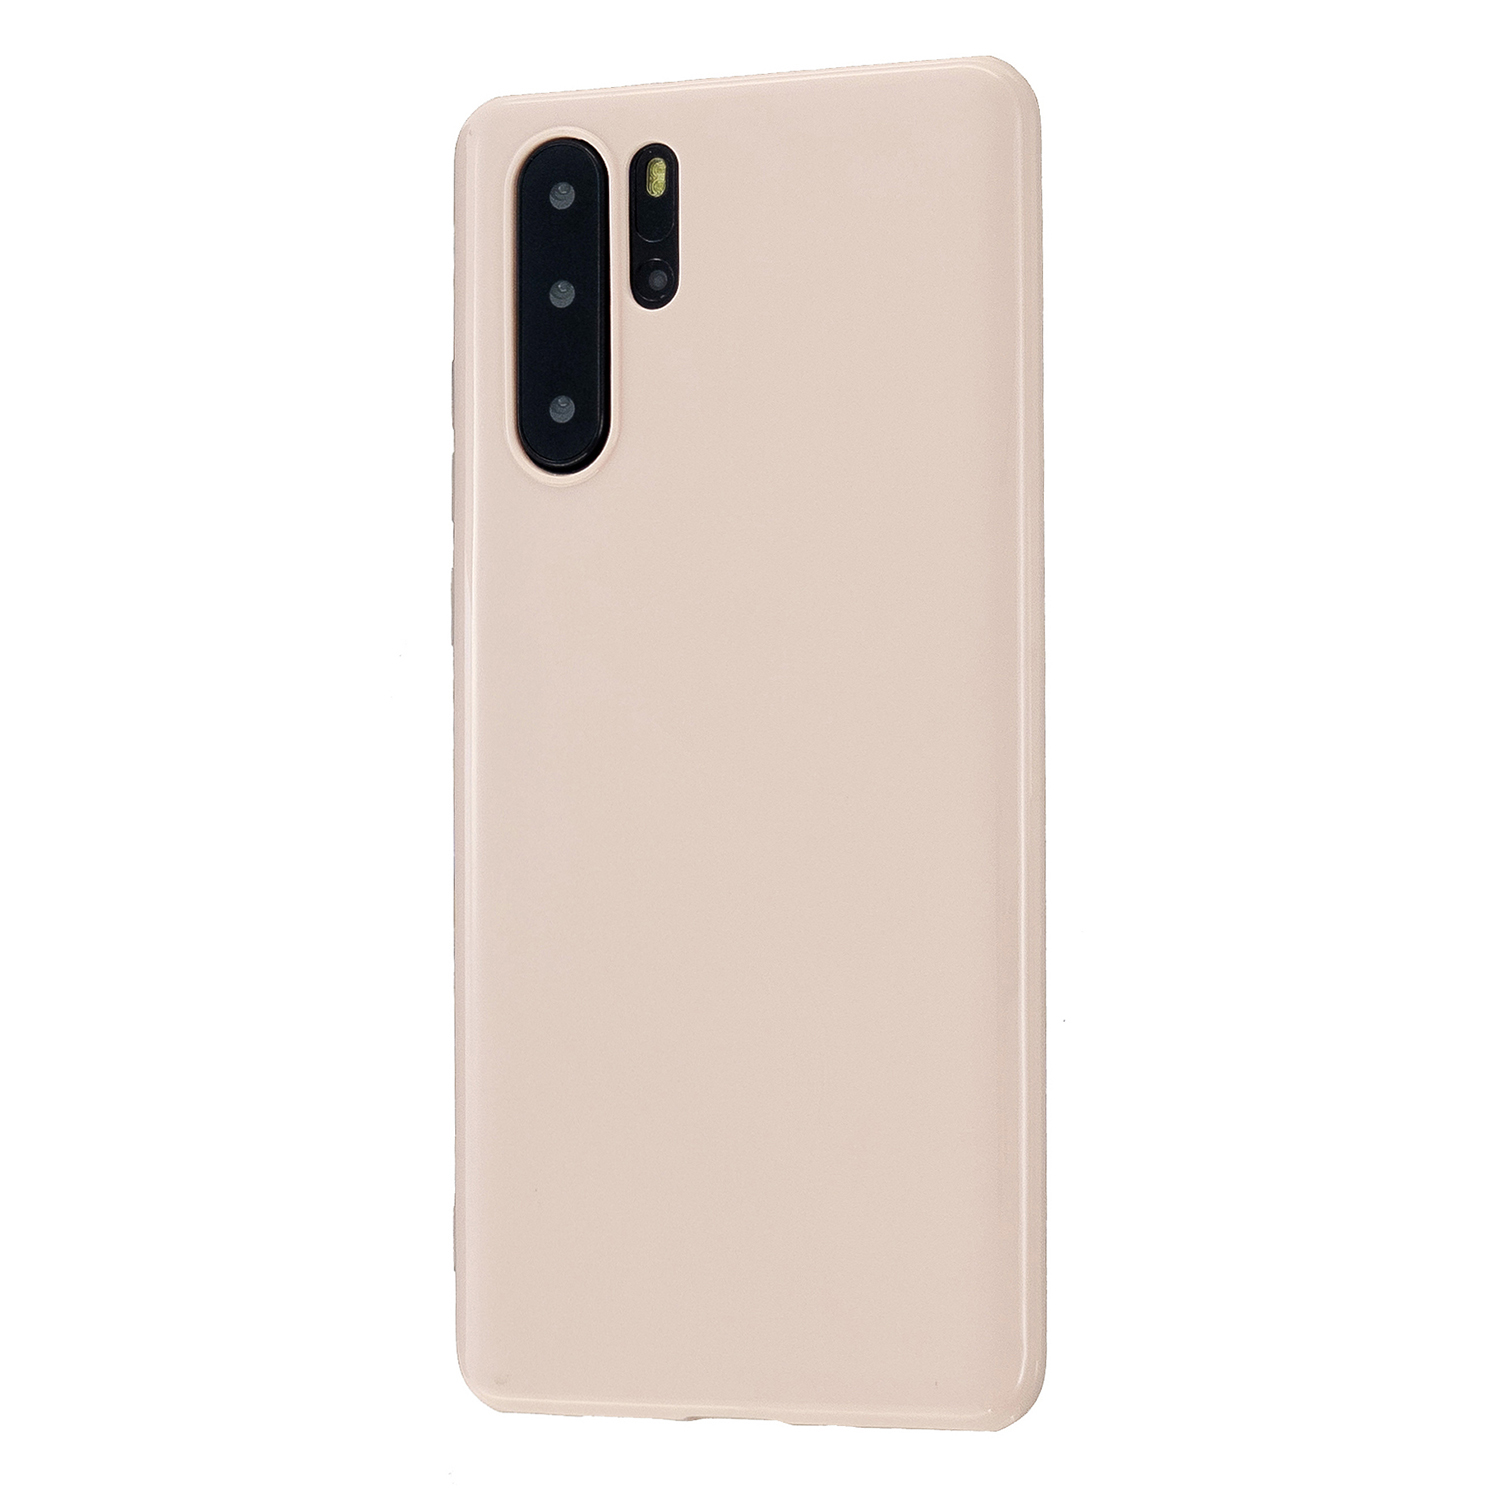 For HUAWEI P30/P30 Lite/P30 Pro Cellphone Case Simple Profile Soft TPU Scratch Proof Phone Shell Sakura pink